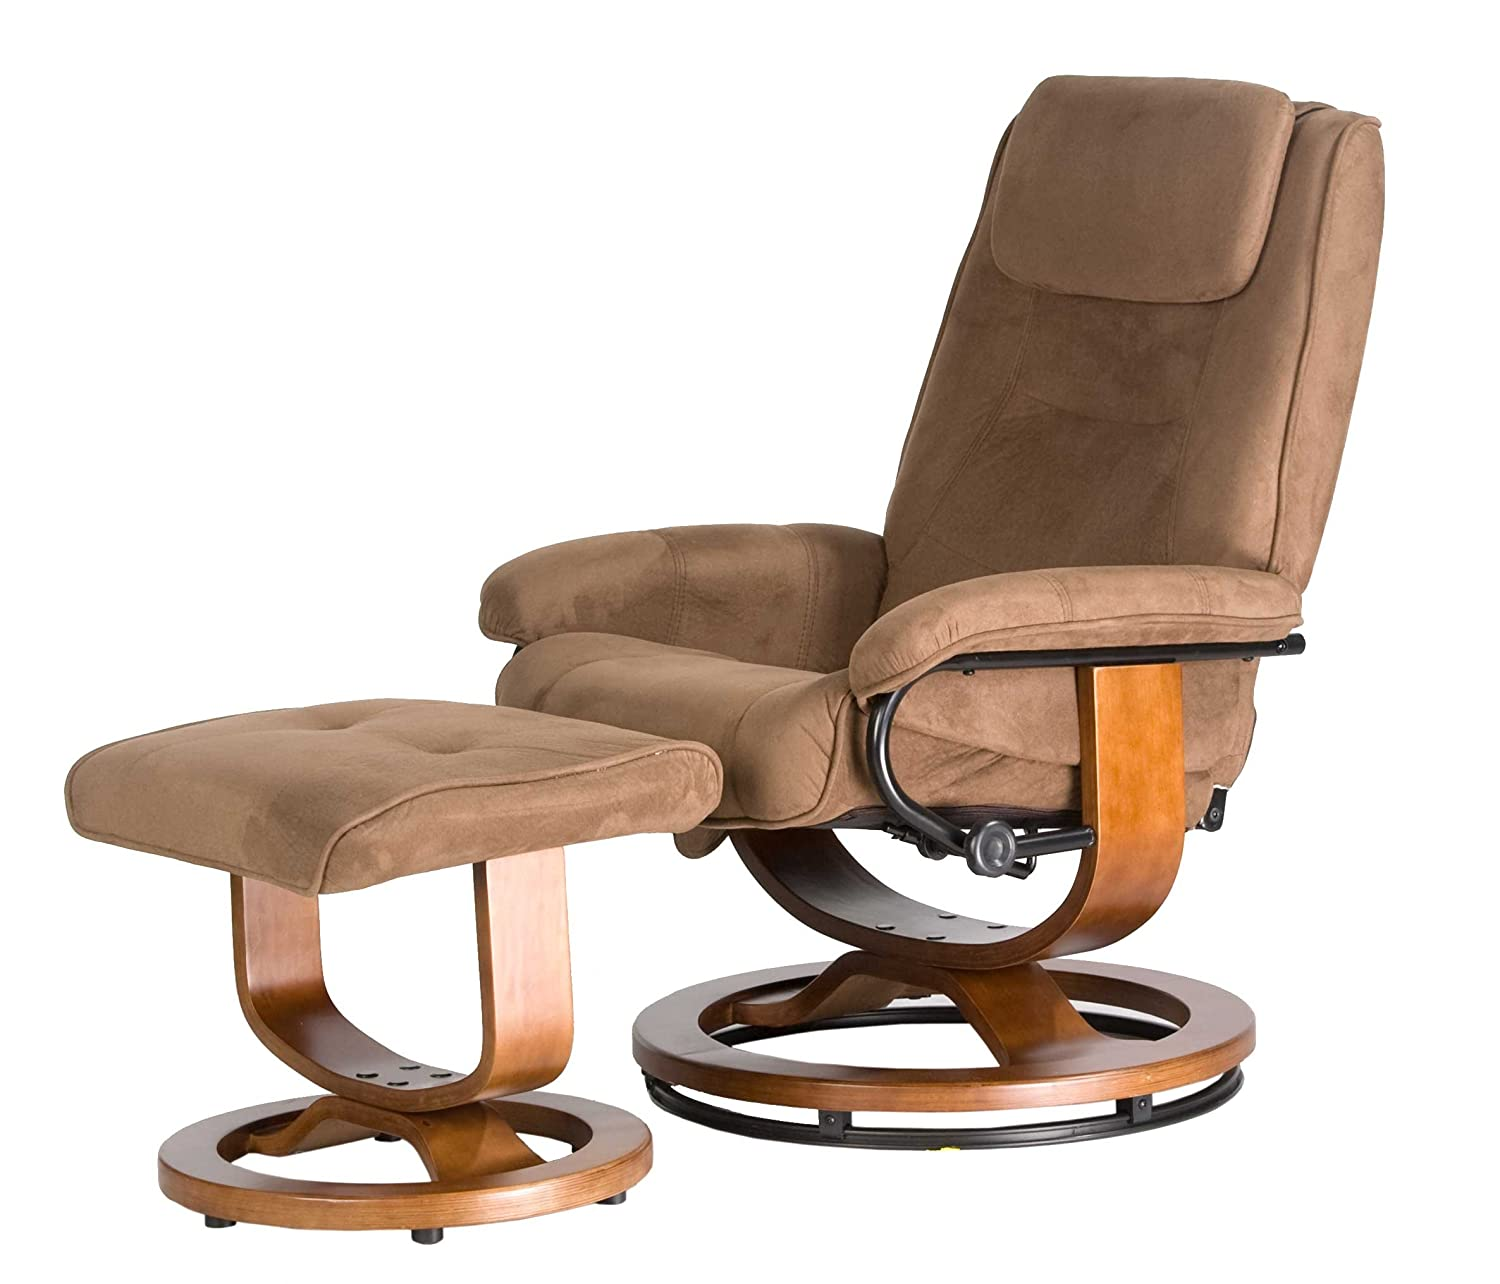 swivel recliner chairs, best swivel recliner chairs, swivel recliner chair, best swivel recliner chair